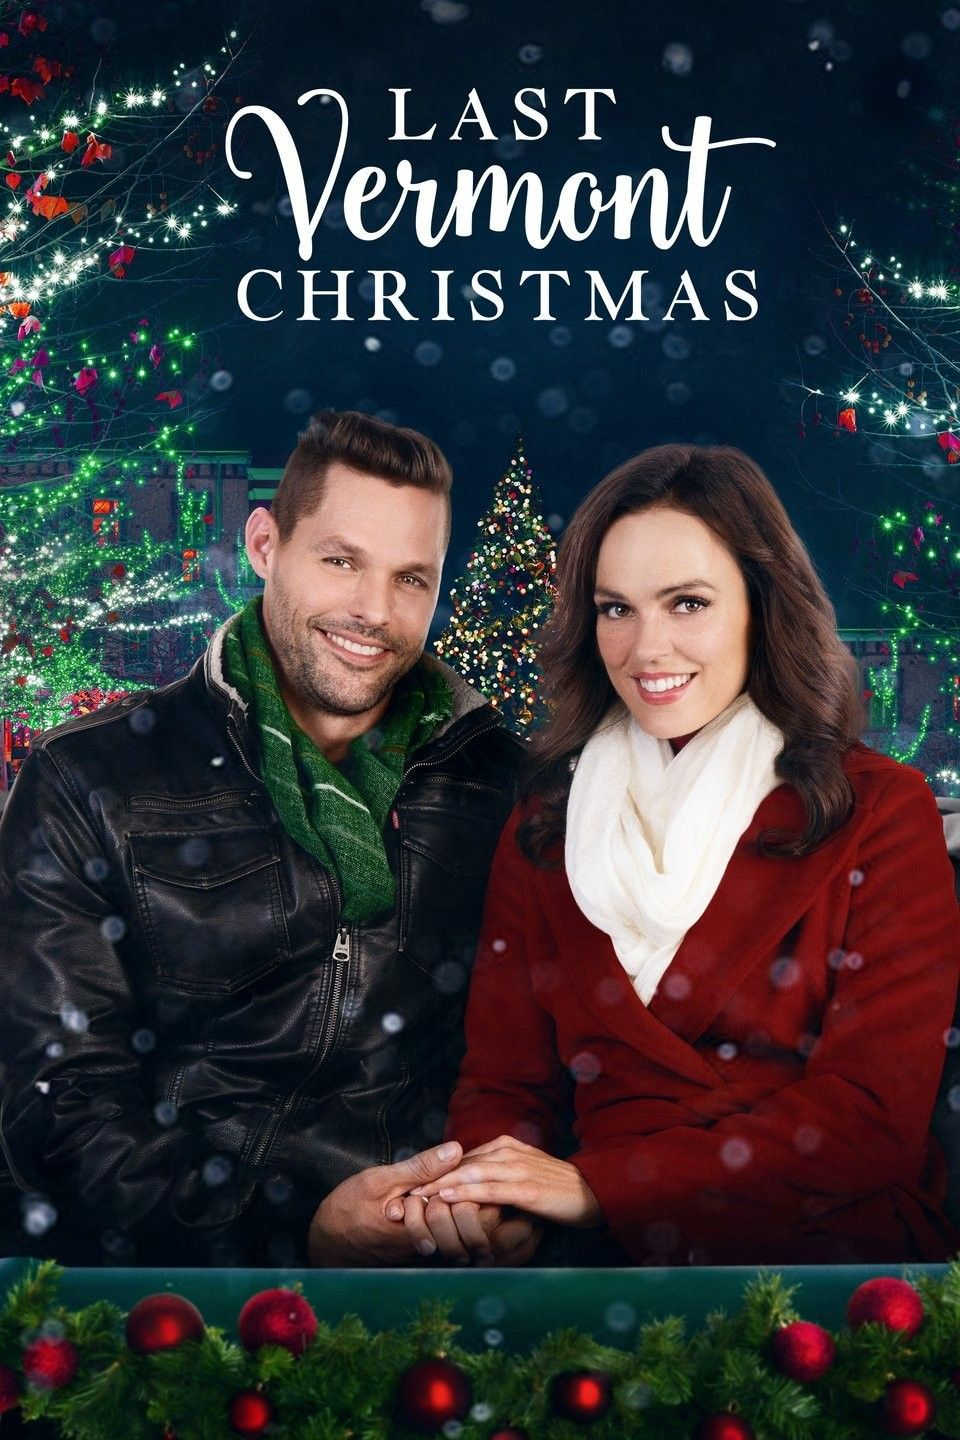 Last Vermont Christmas in 2019 Christmas movies